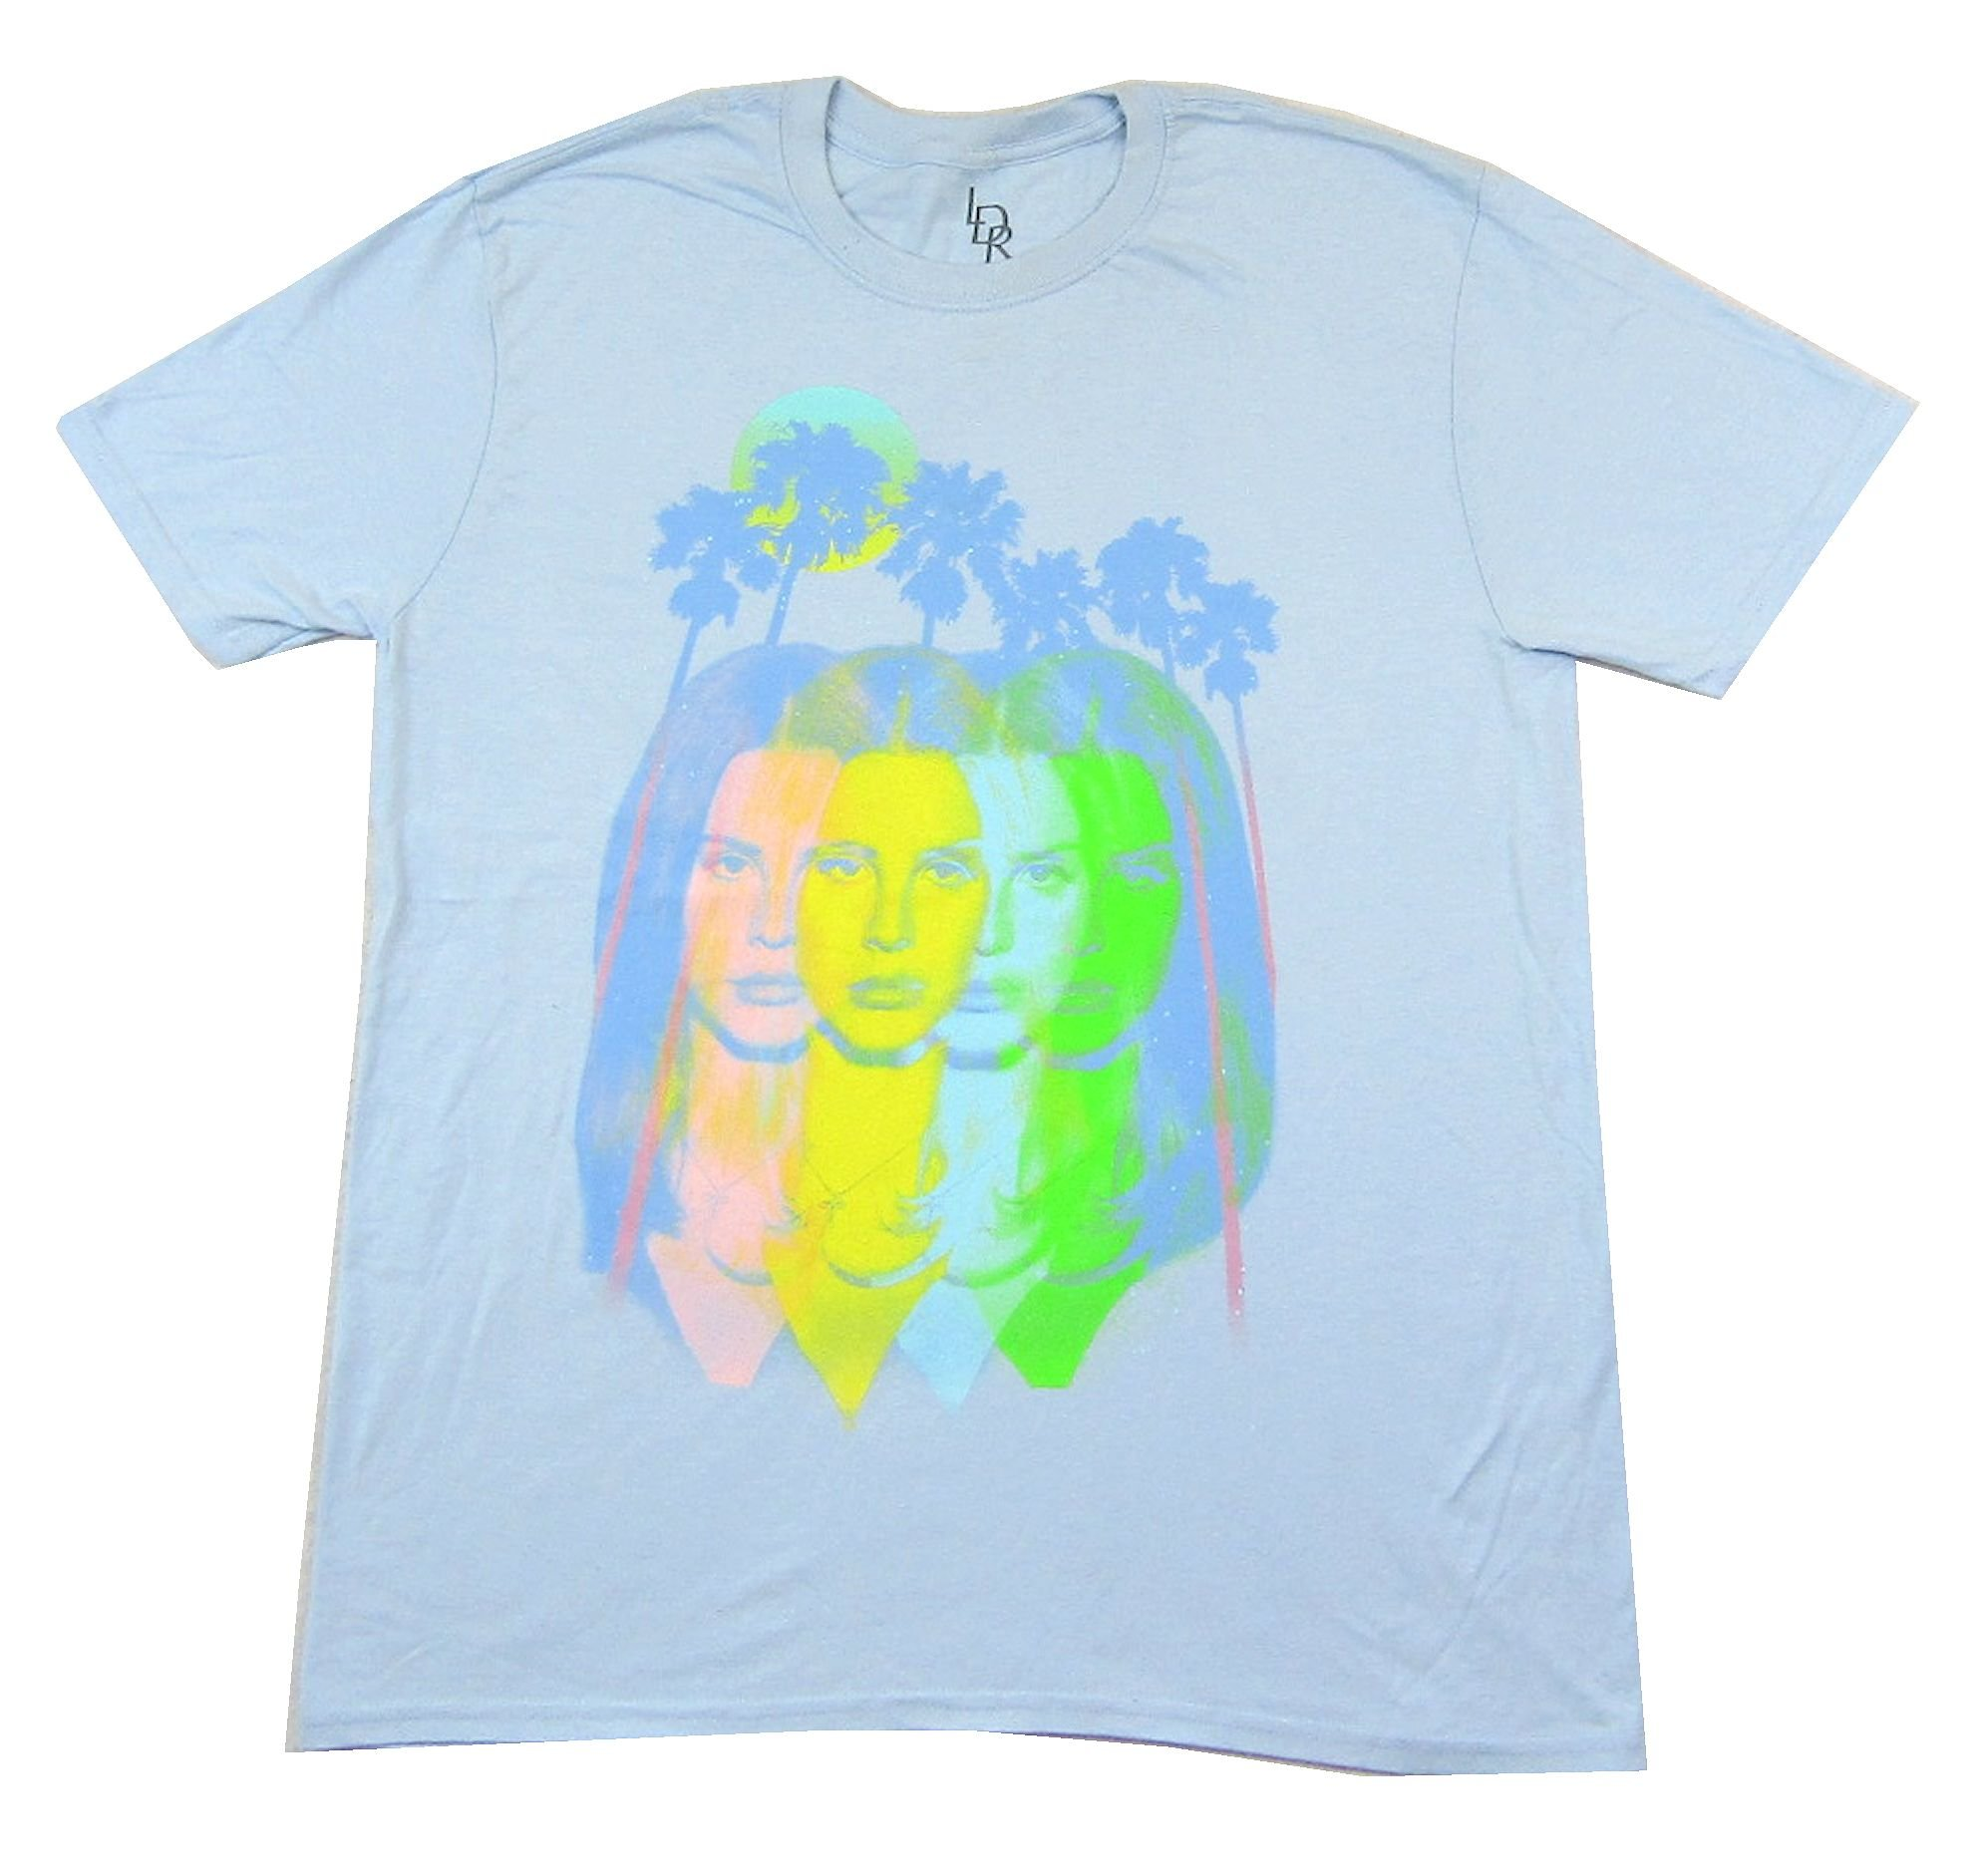 Lana Del Rey Endless Summer Tour 2015 Blue T Shirt (L)